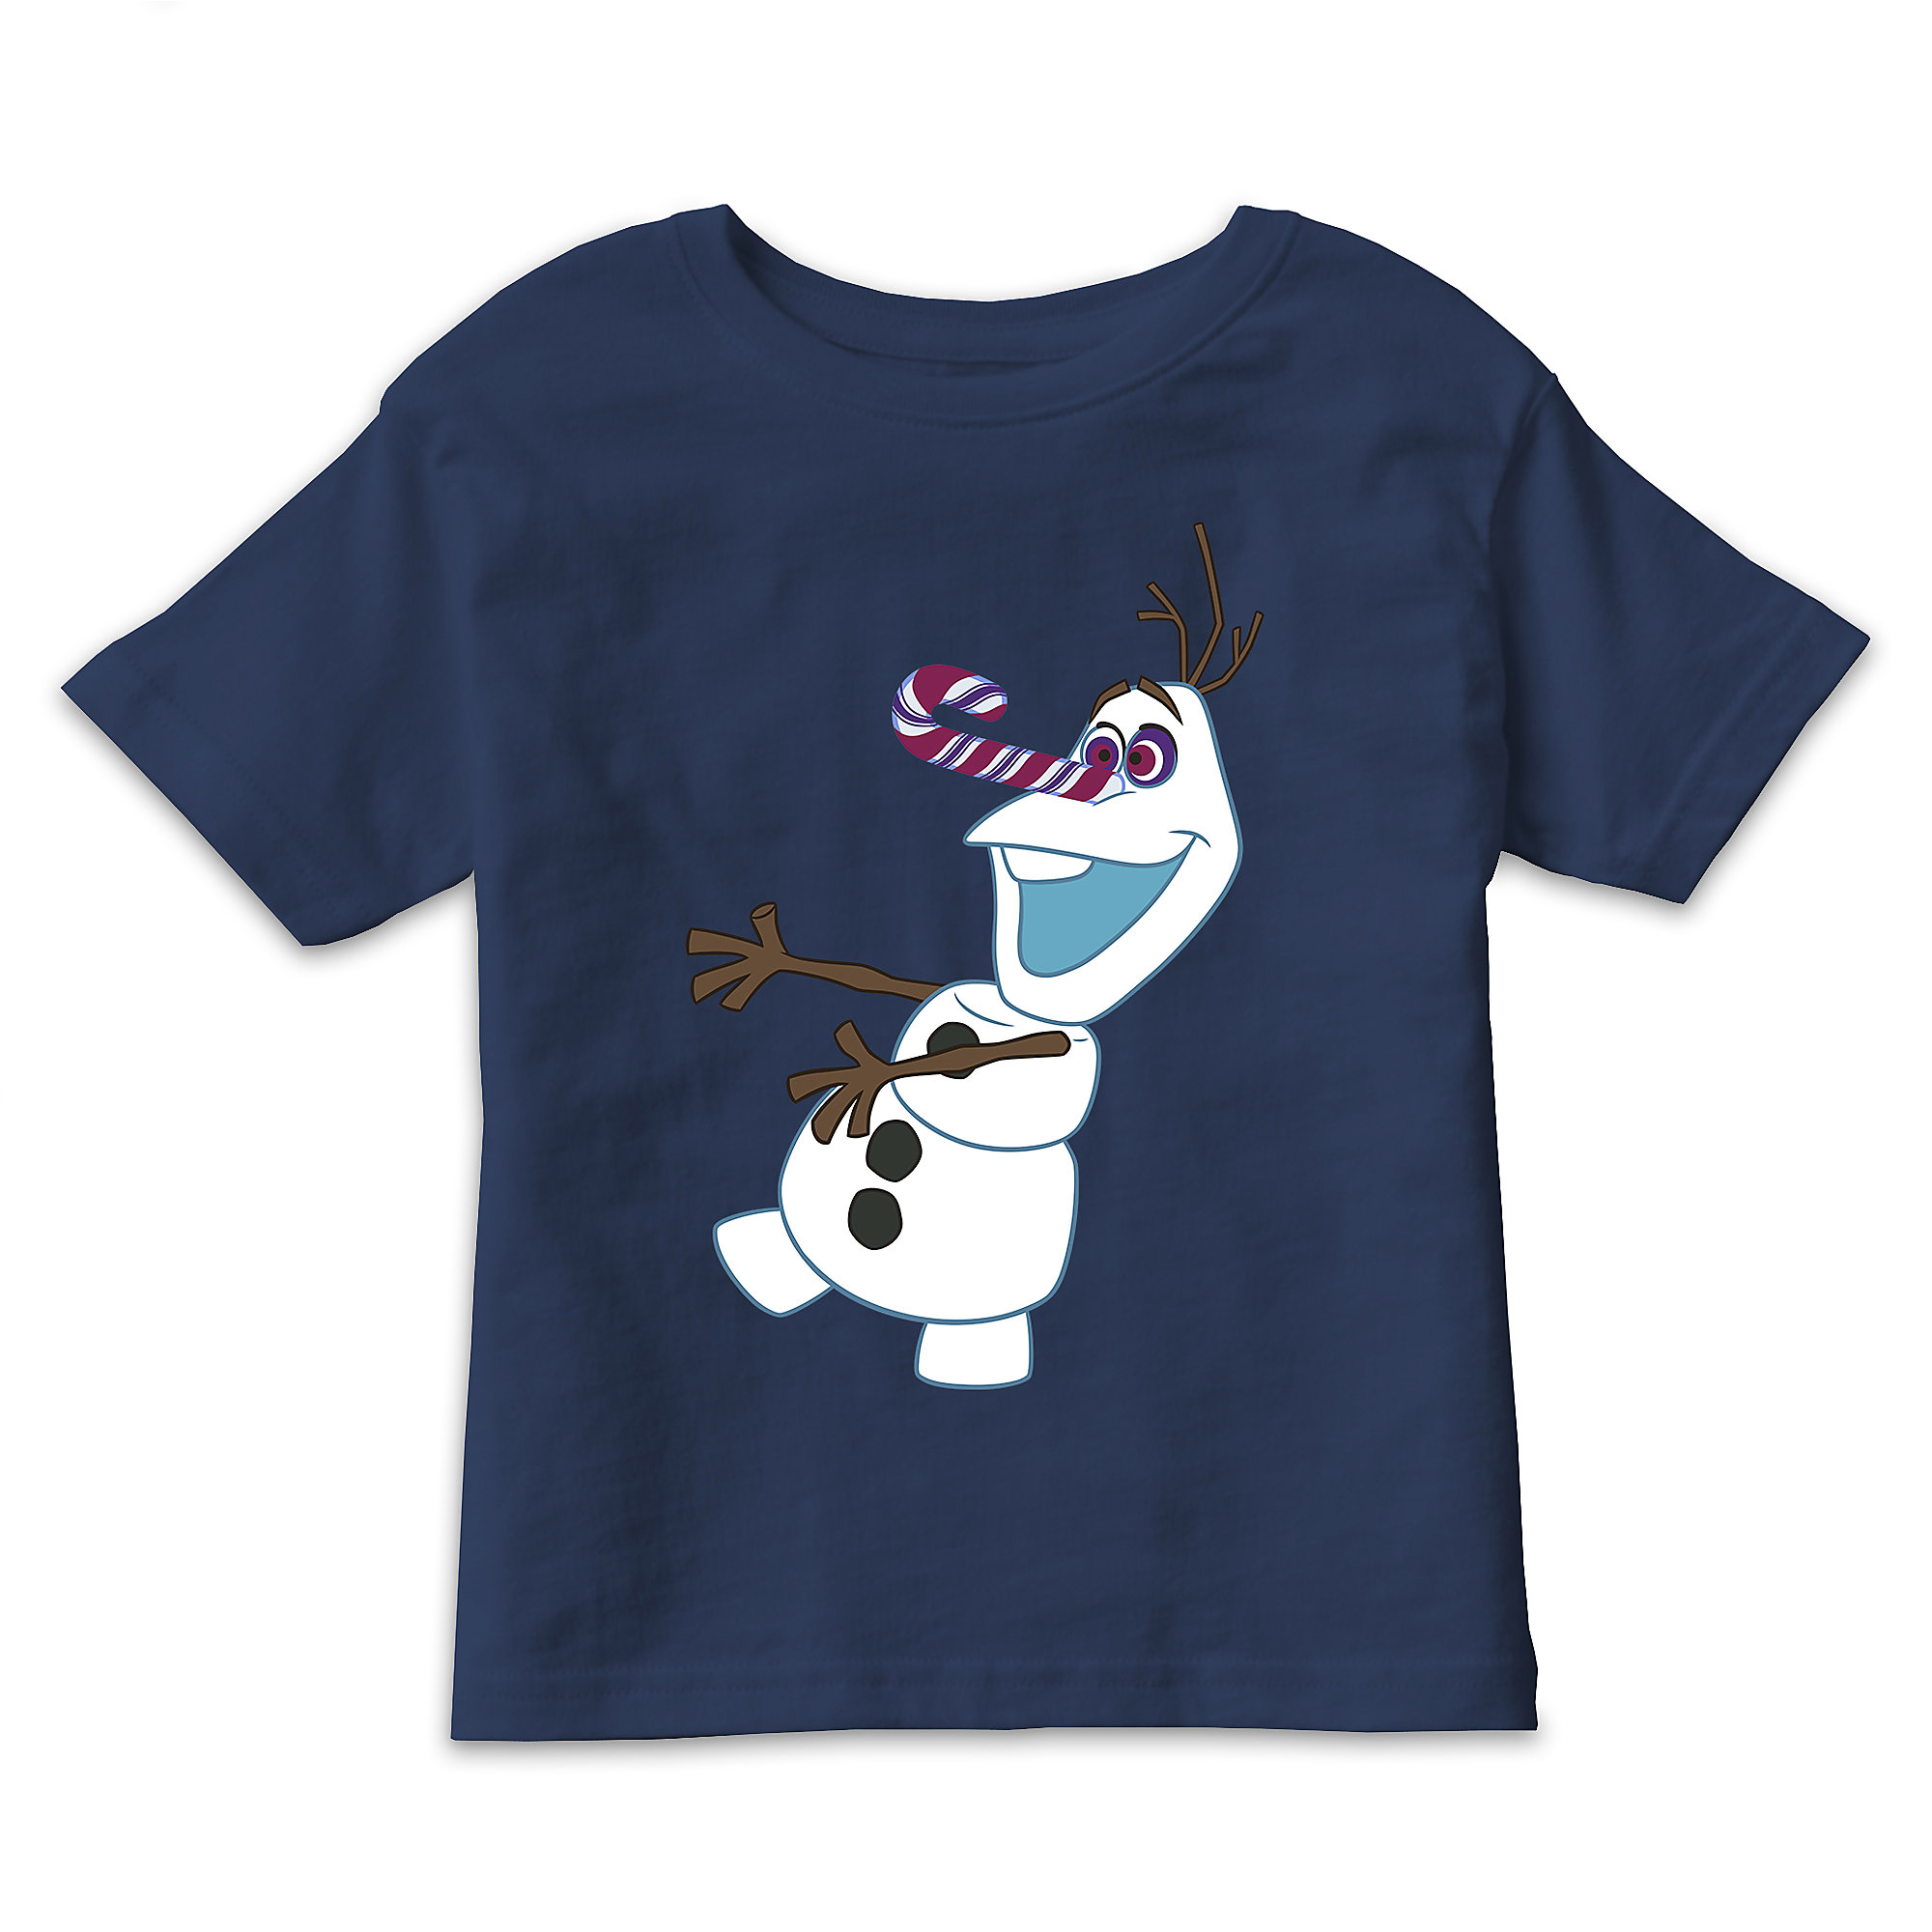 Olaf's Frozen Adventure T-Shirt for Kids - Customizable